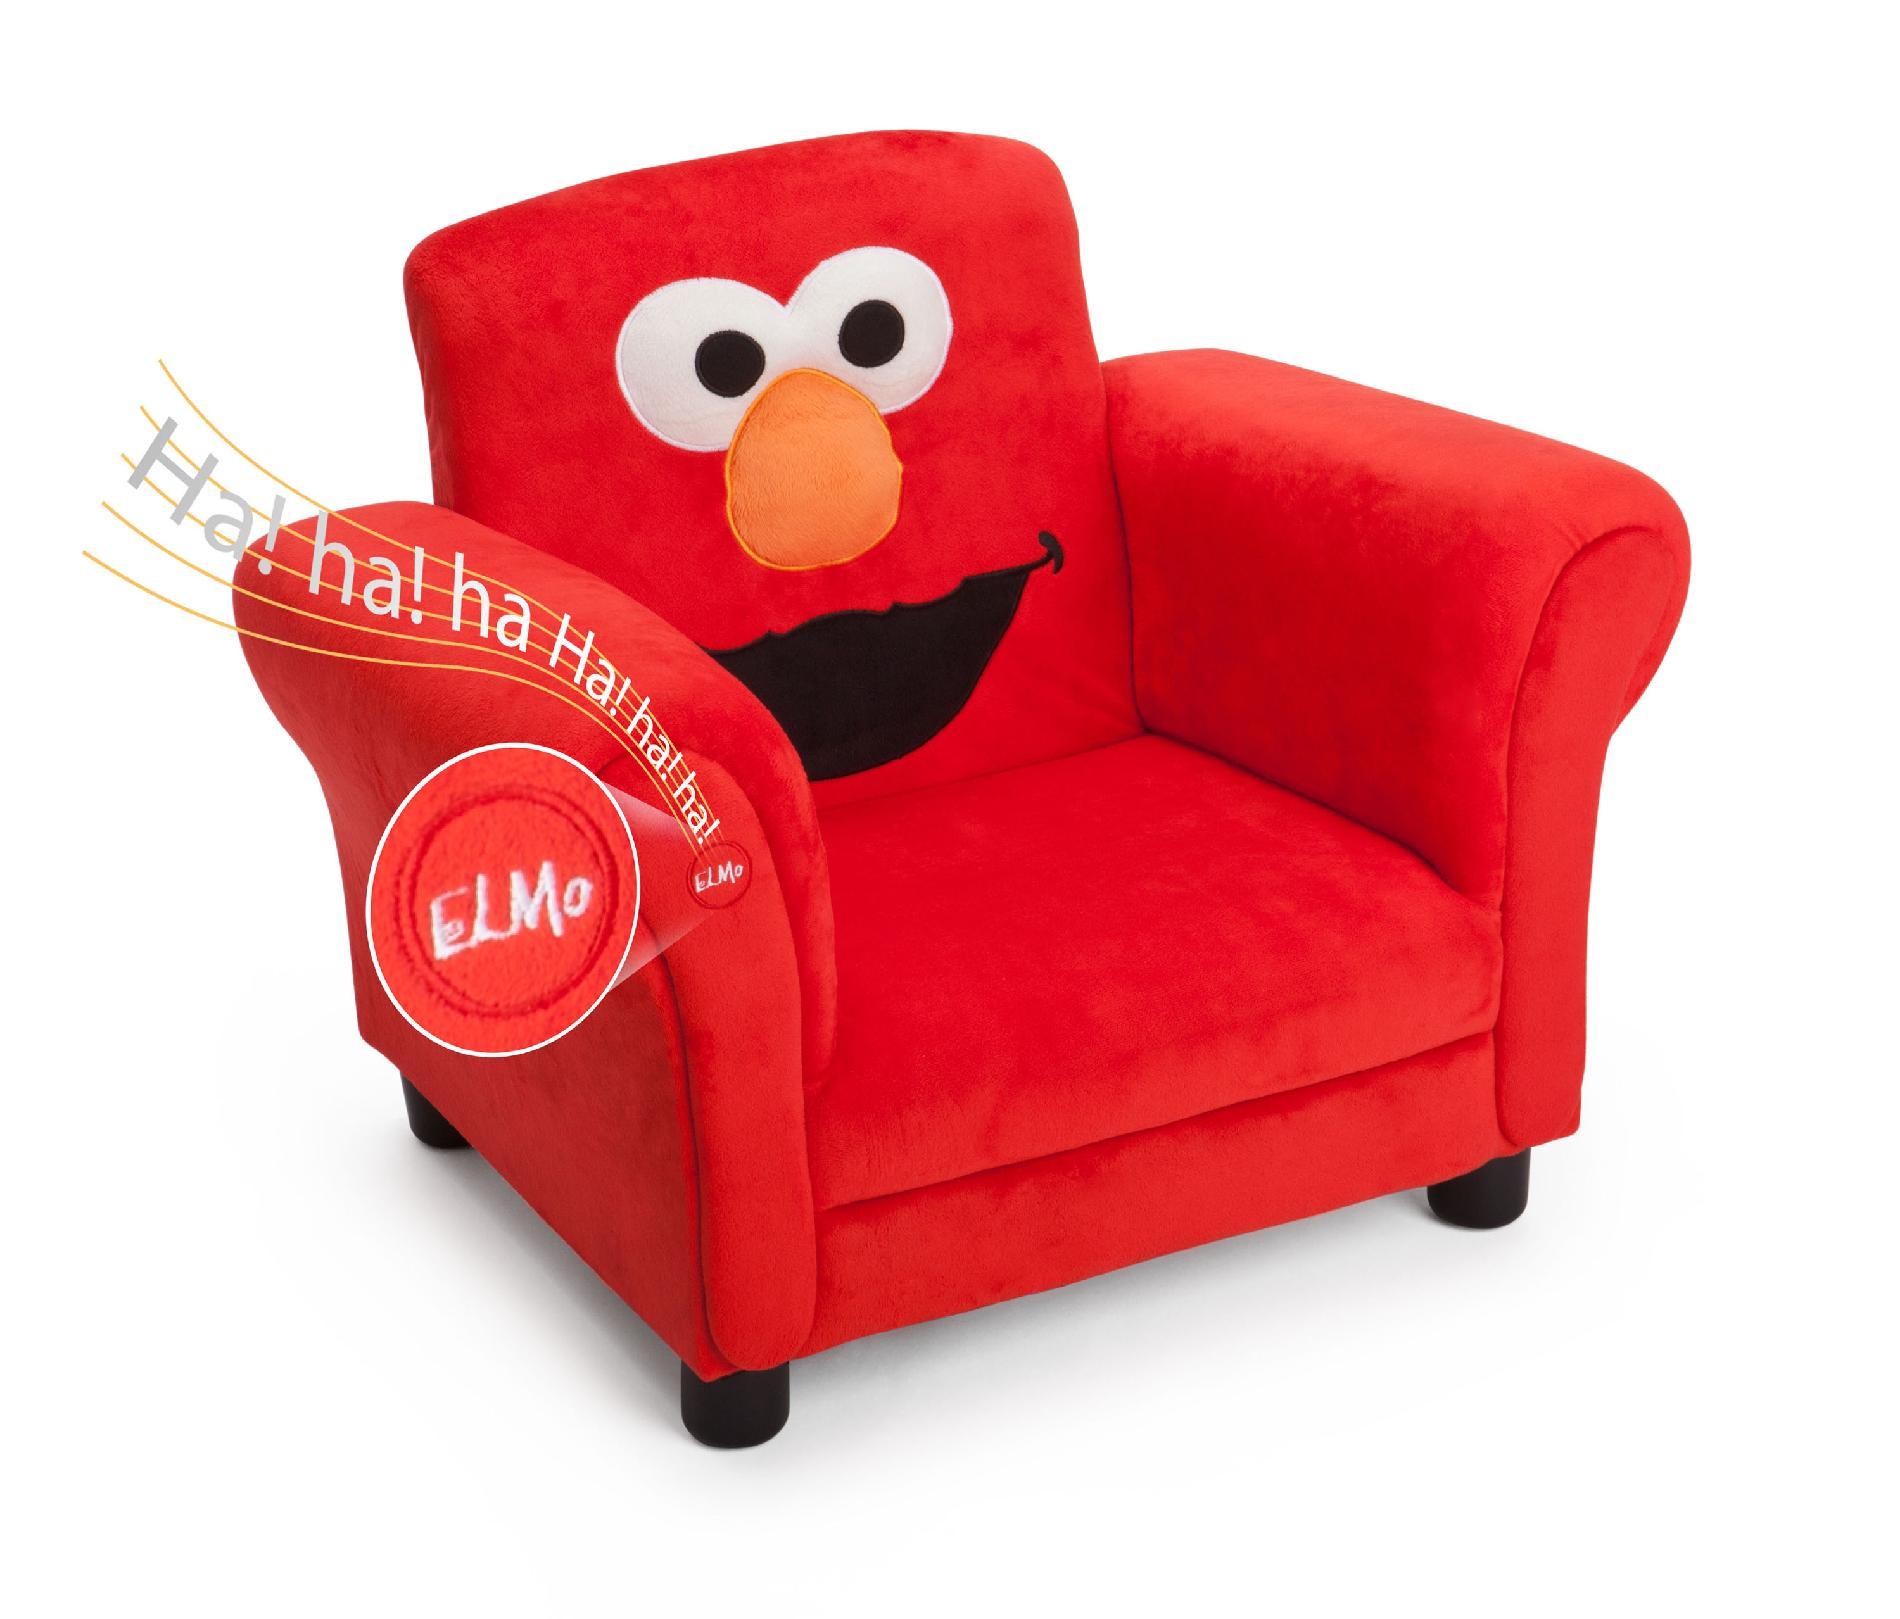 Toddler Chairs Upholstered Delta Children Sesame Street Elmo Giggle Upholstered Chair With